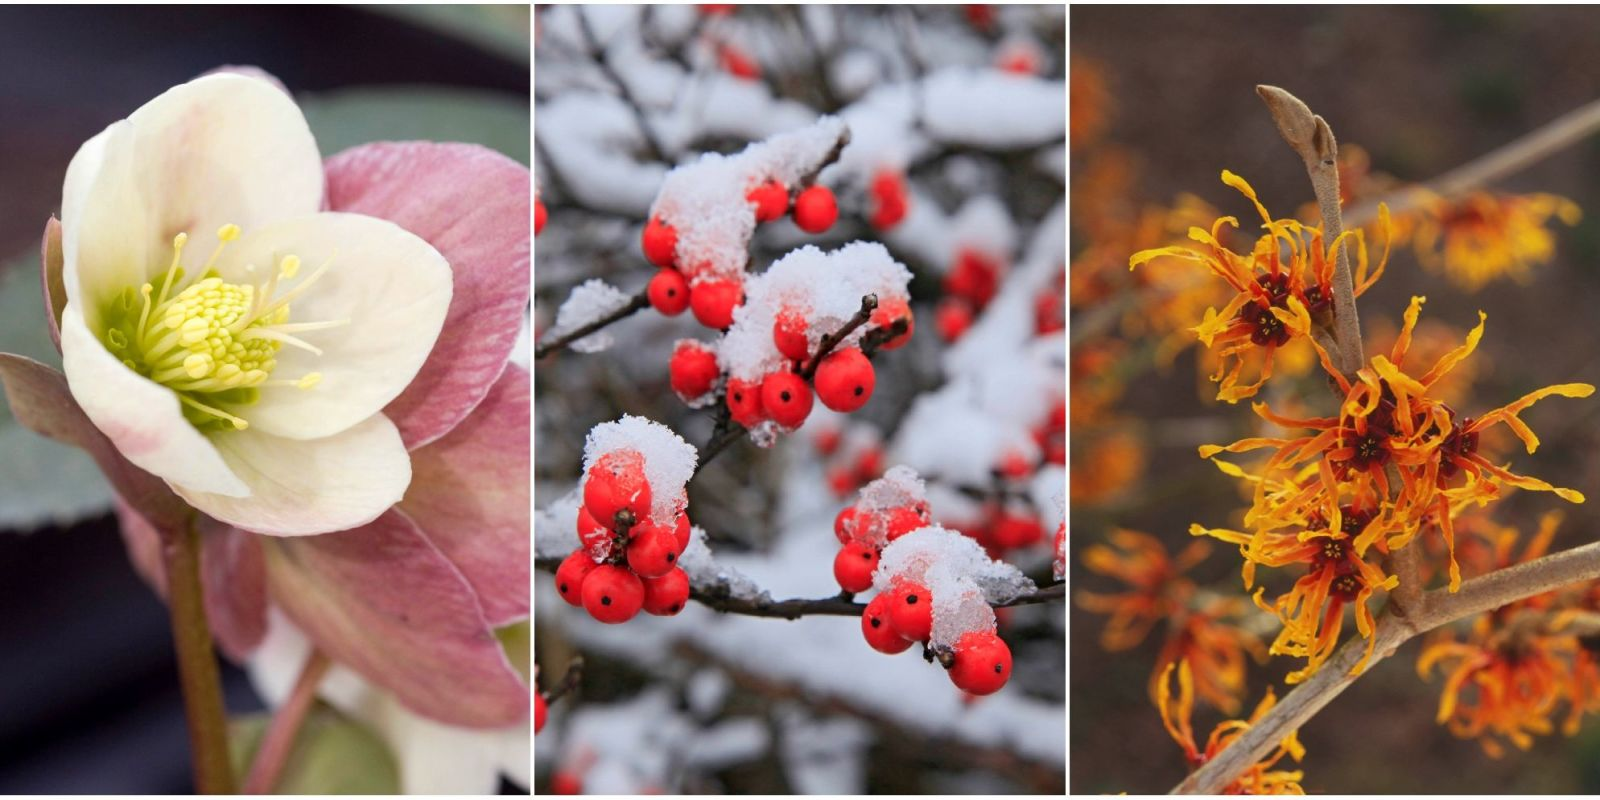 Flowers that bloom in the winter - Flowers That Bloom In The Winter 31